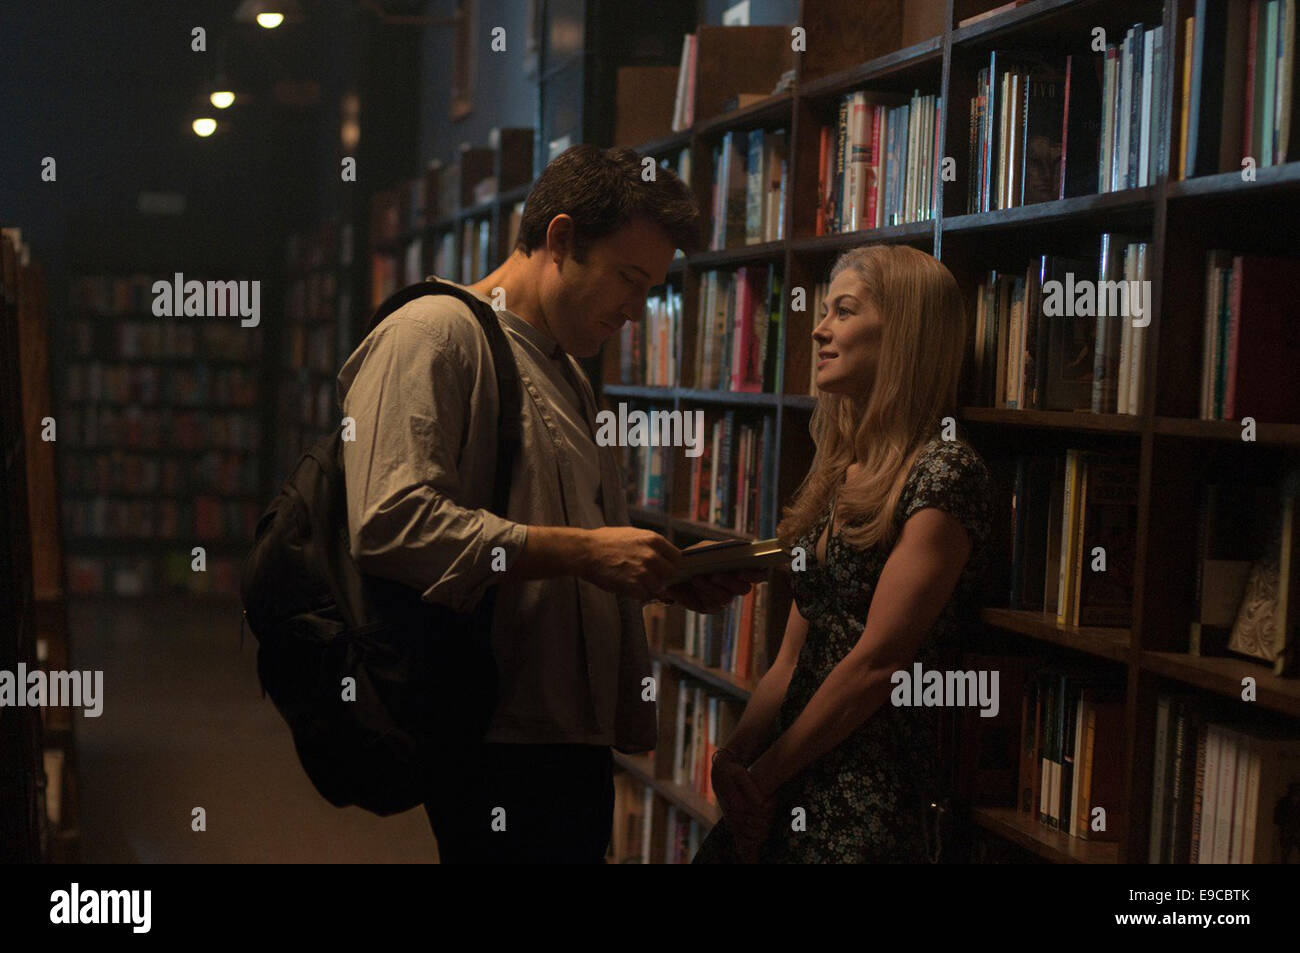 GONE GIRL (2014)   BEN AFFLECK, ROSAMUND PIKE  DAVID FINCHER (DIR) - Stock Image